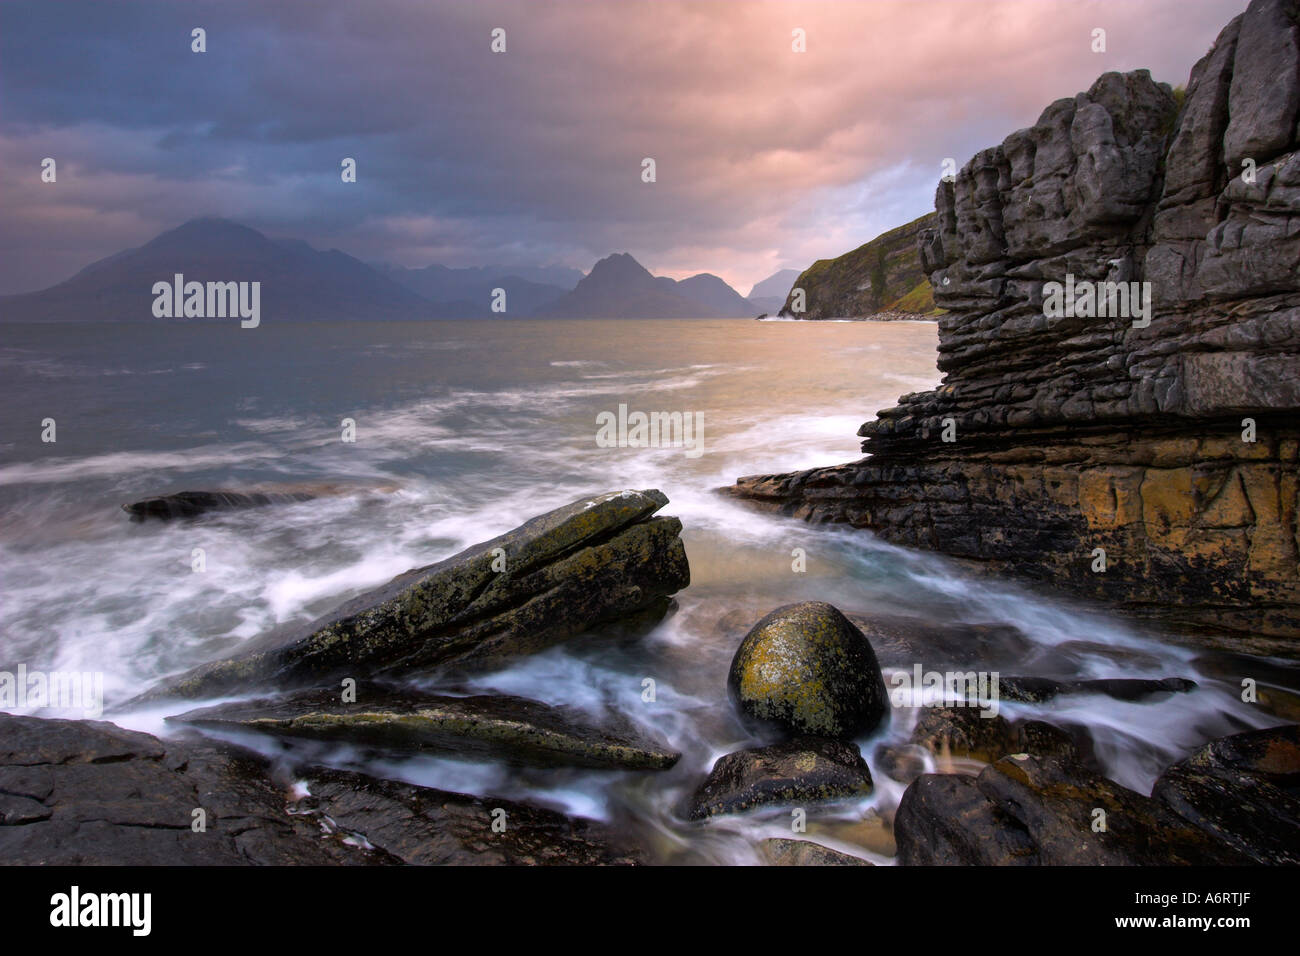 The rock strewn coast of Elgol, Isle of Skye on a dramatic morning.  High tide surges around the boulders. - Stock Image